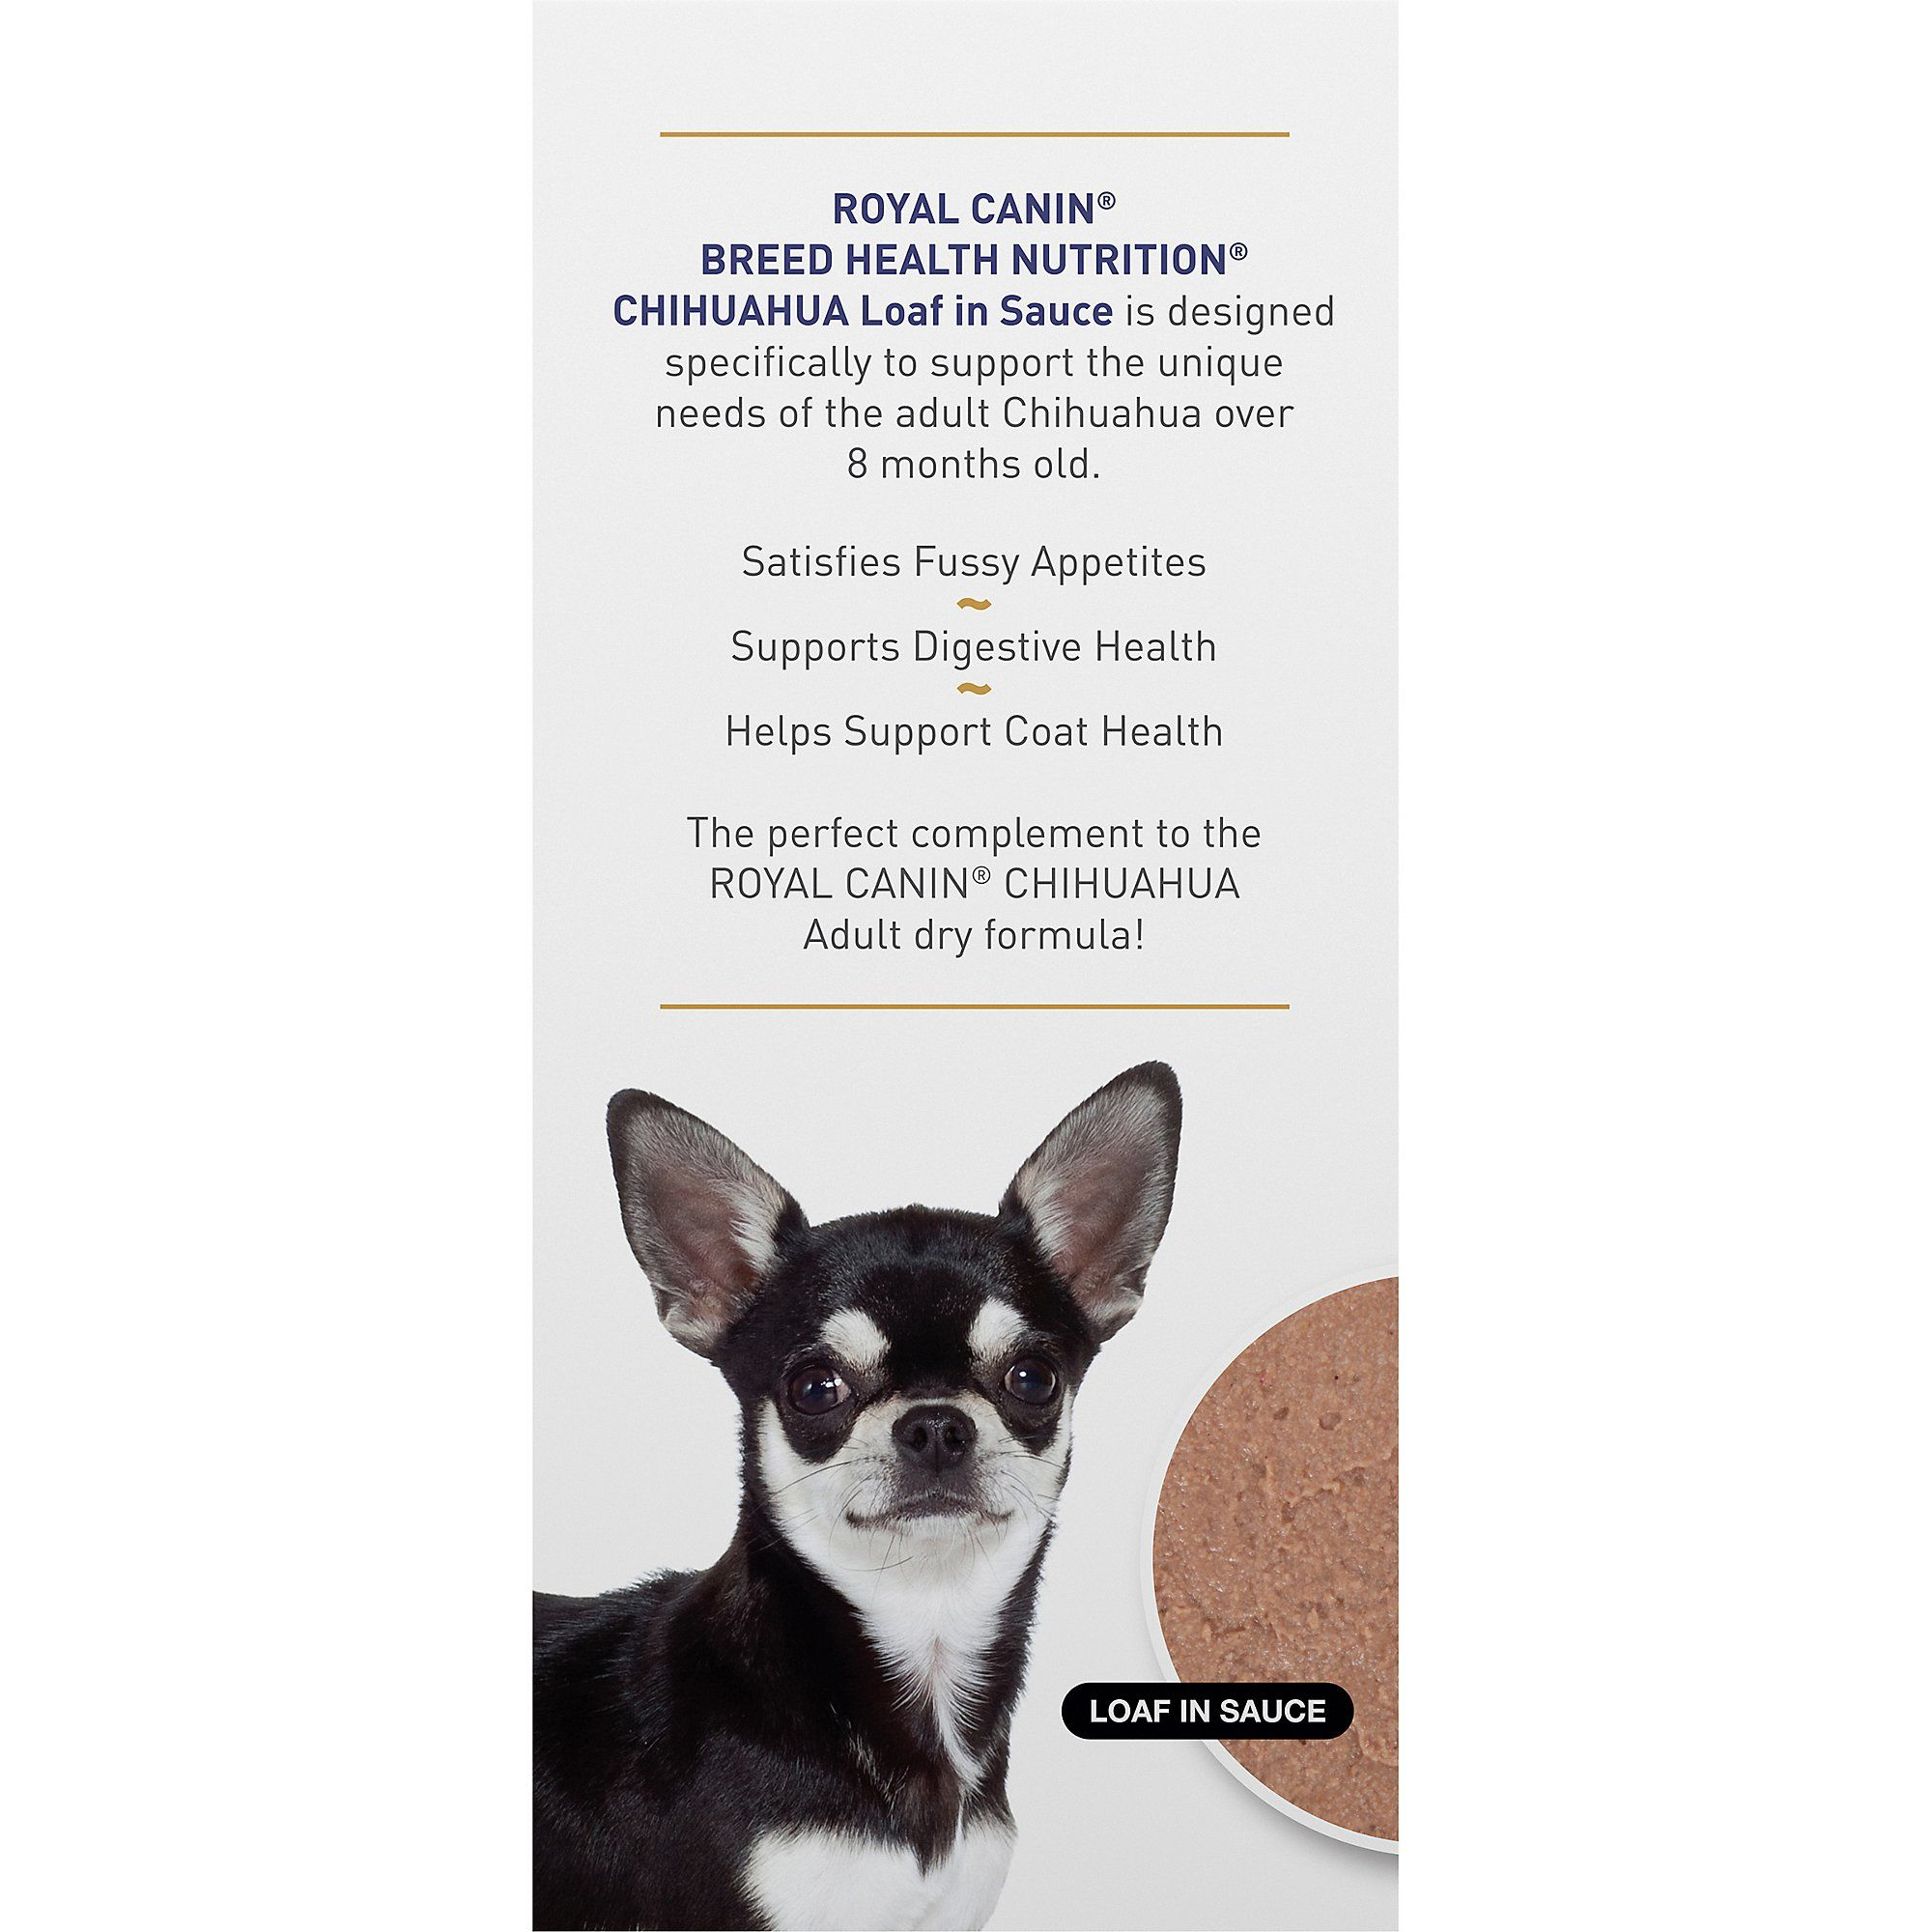 Royal Canin Breed Health Nutrition Chihuahua Loaf In Sauce Dog